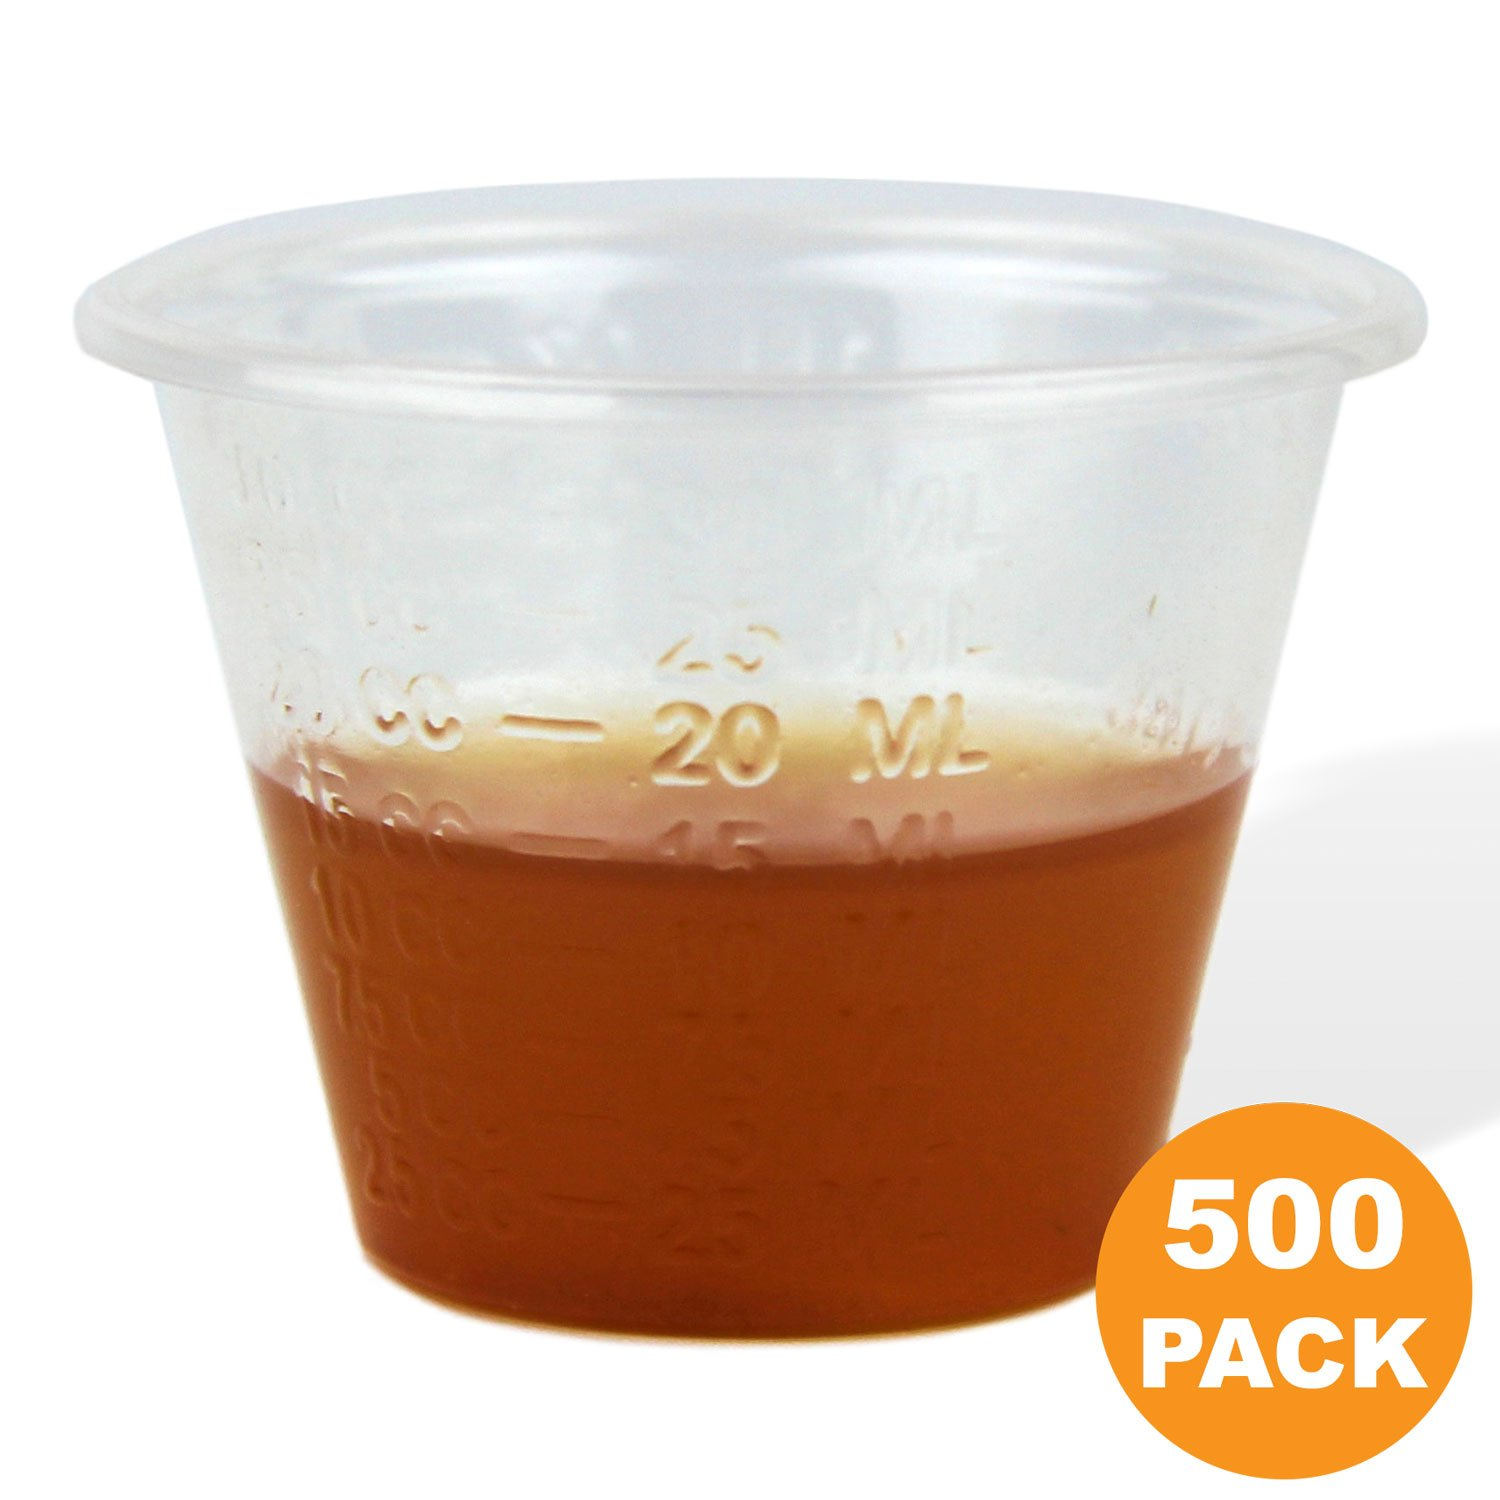 1 oz Graduated Medicine Cups – Polypropylene Disposable Measuring Cup, Mixing Cups with ML, Dram, CC, TBSP & FL oz Measurement Markings for Pill, Epoxy, Resin & Liquid/Powder - 500 Cups